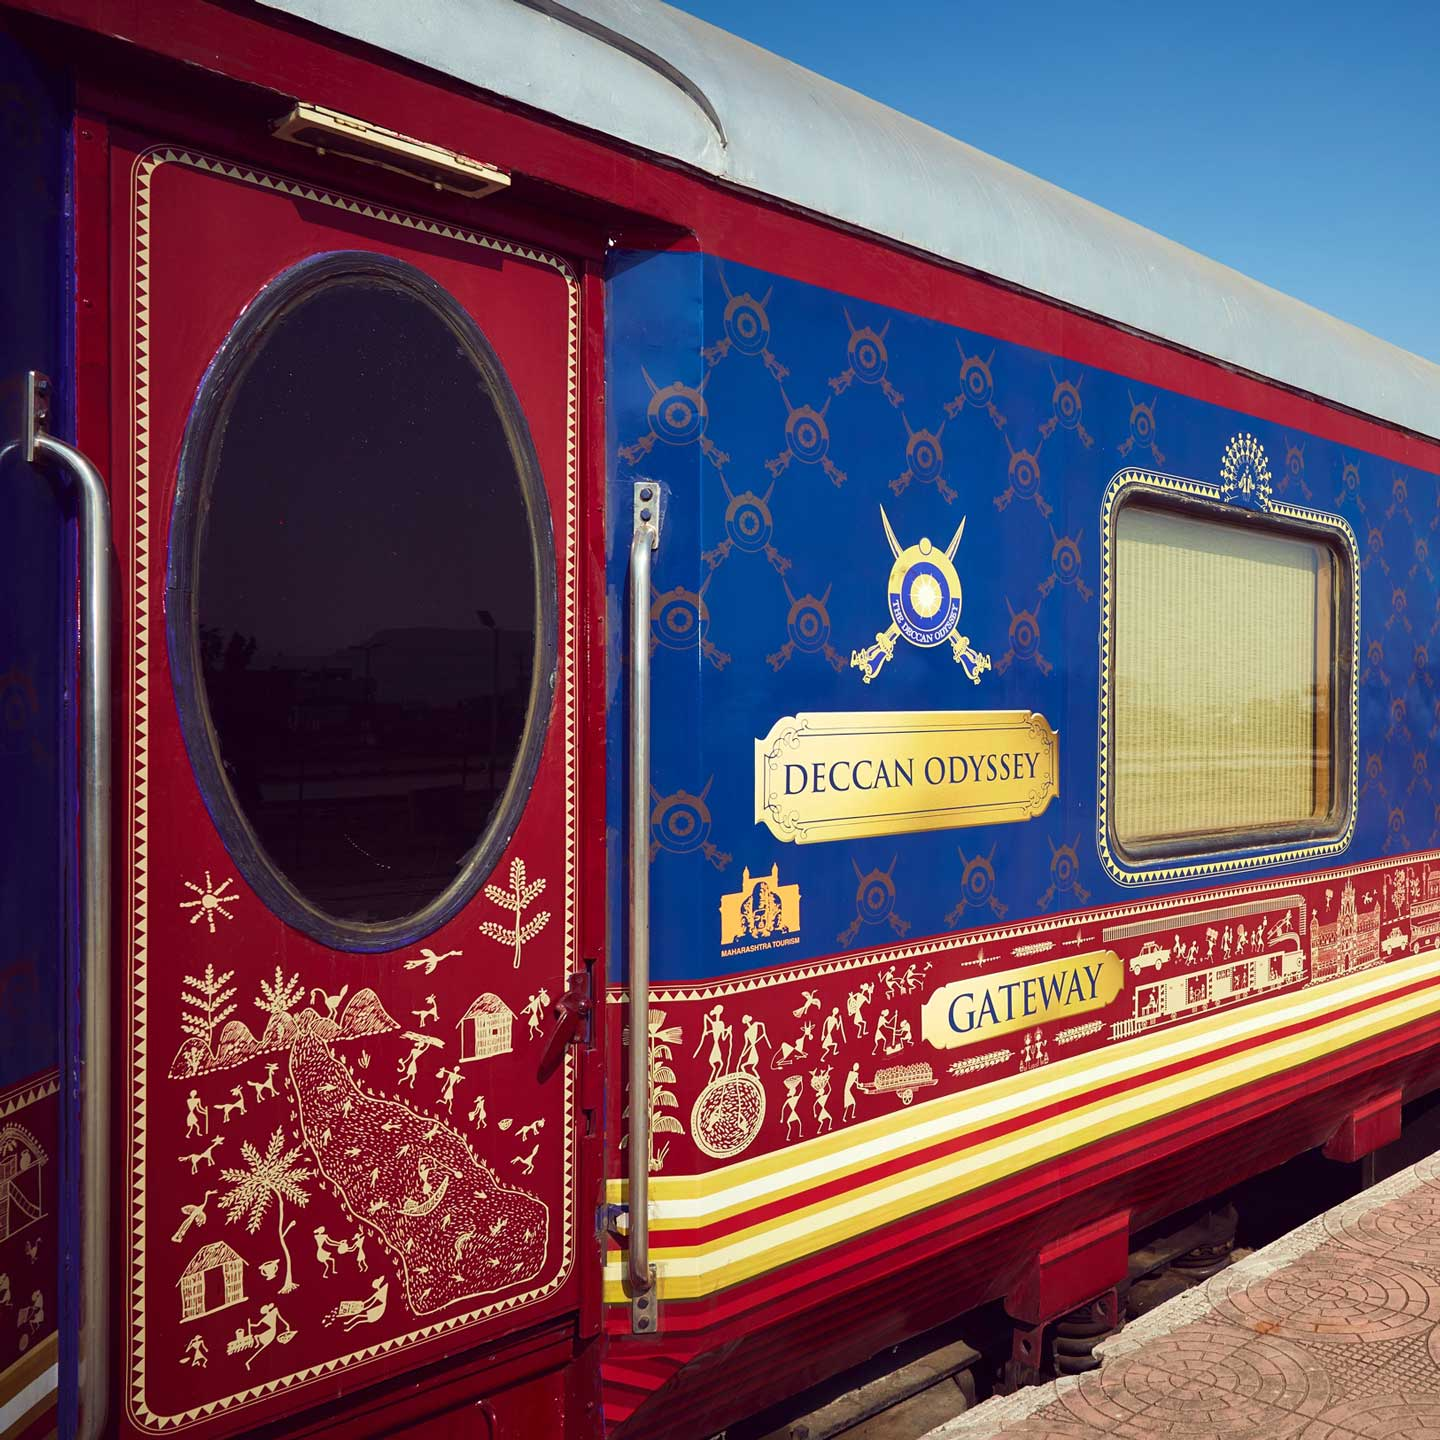 Luxury Trains, Deccan Odyssey